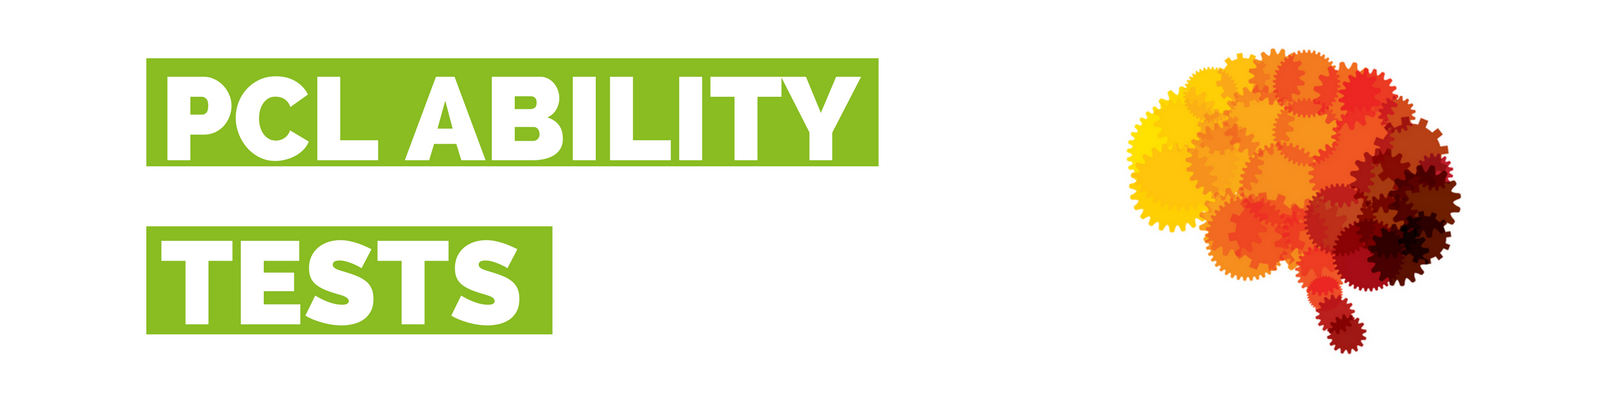 Ability Tests - 25 years of business psychology - PCL